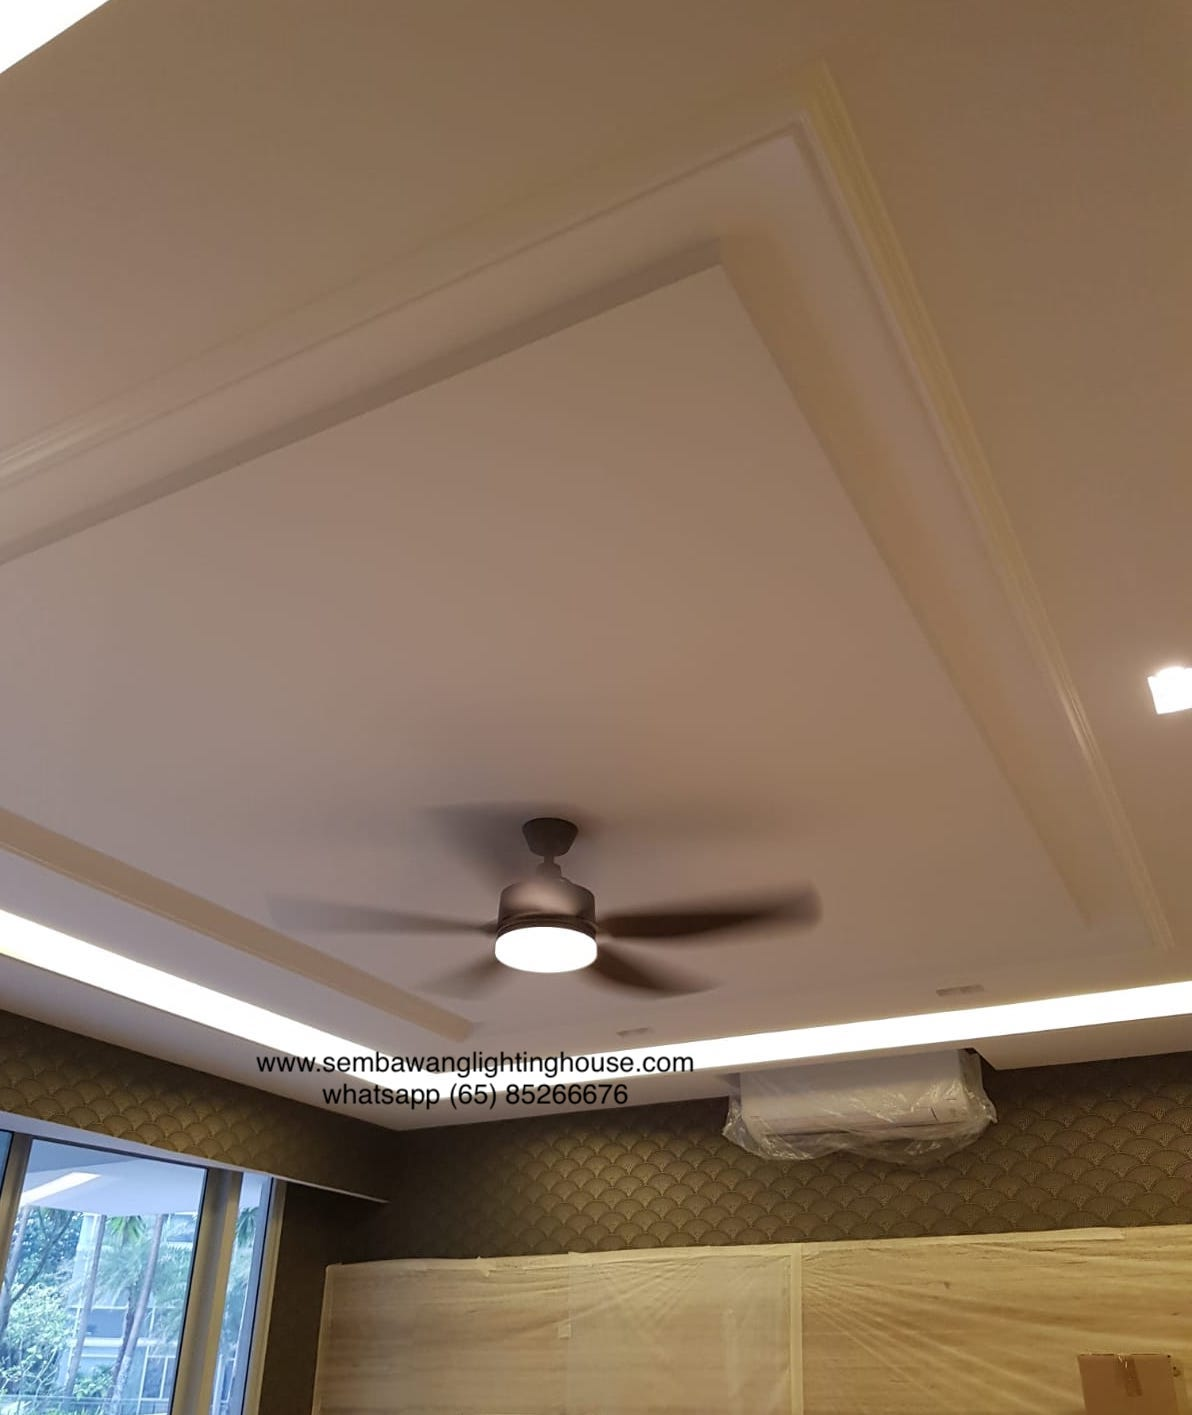 crestar-airis-5-blade-dark-brown-led-ceiling-fan-sample-sembawang-lighting-house-11.jpg